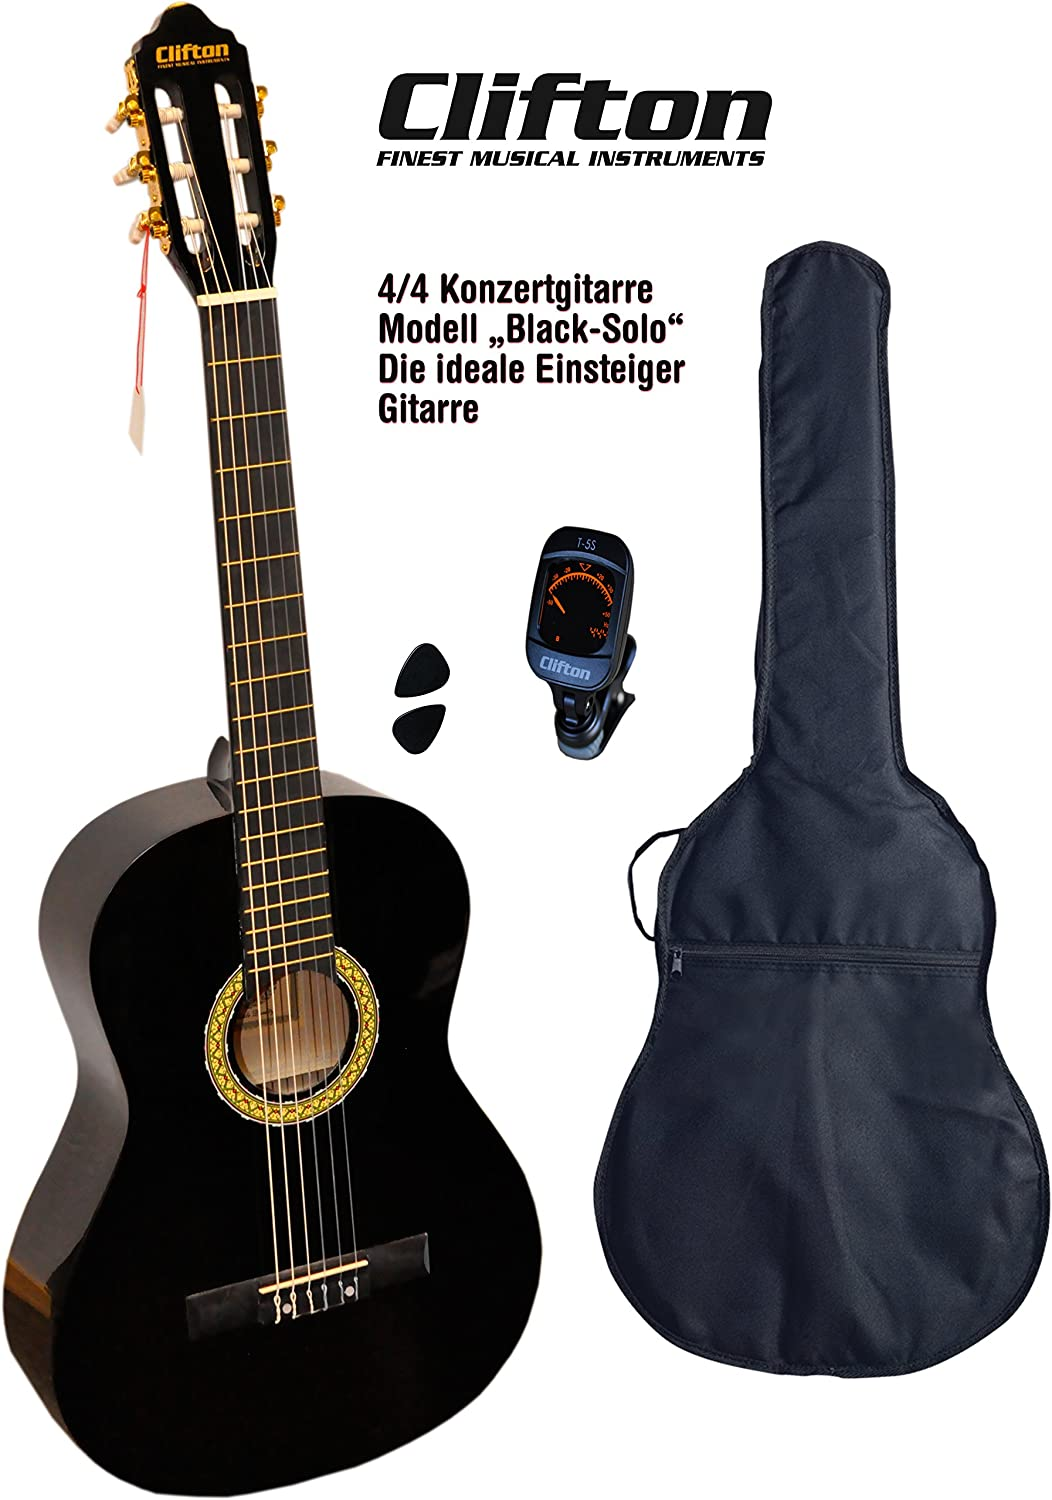 Clifton 4 4 guitarra de concierto Black solo funda acolchada Afinador Digital Con rückengarniture